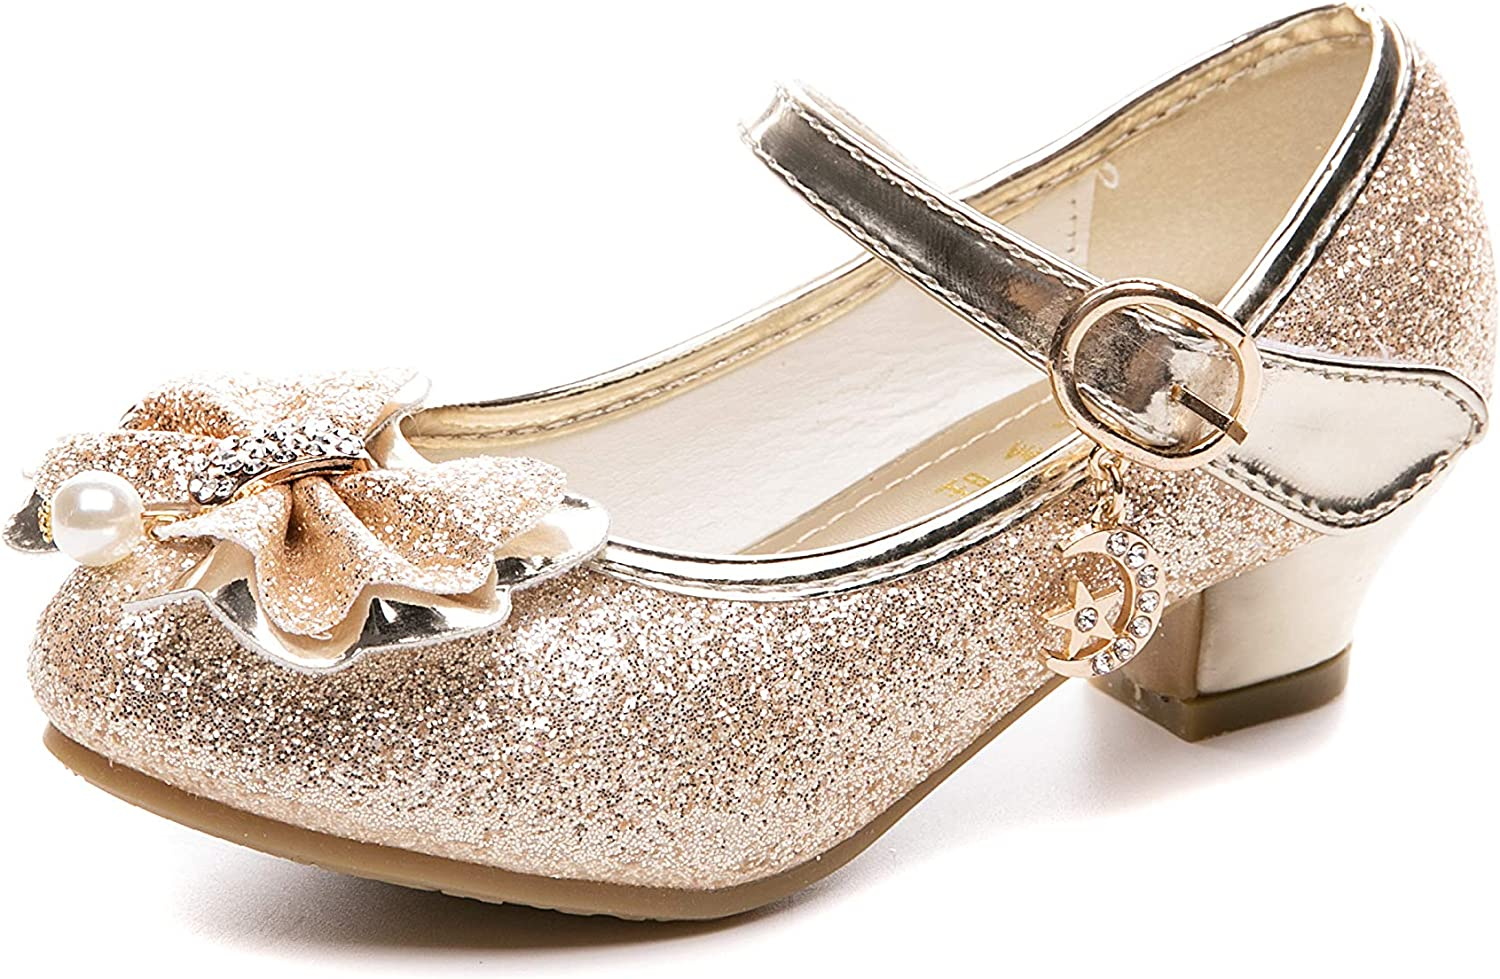 Girls Kids Children Low Heel Party Wedding Mary Jane Sandals Occasion Shoes New